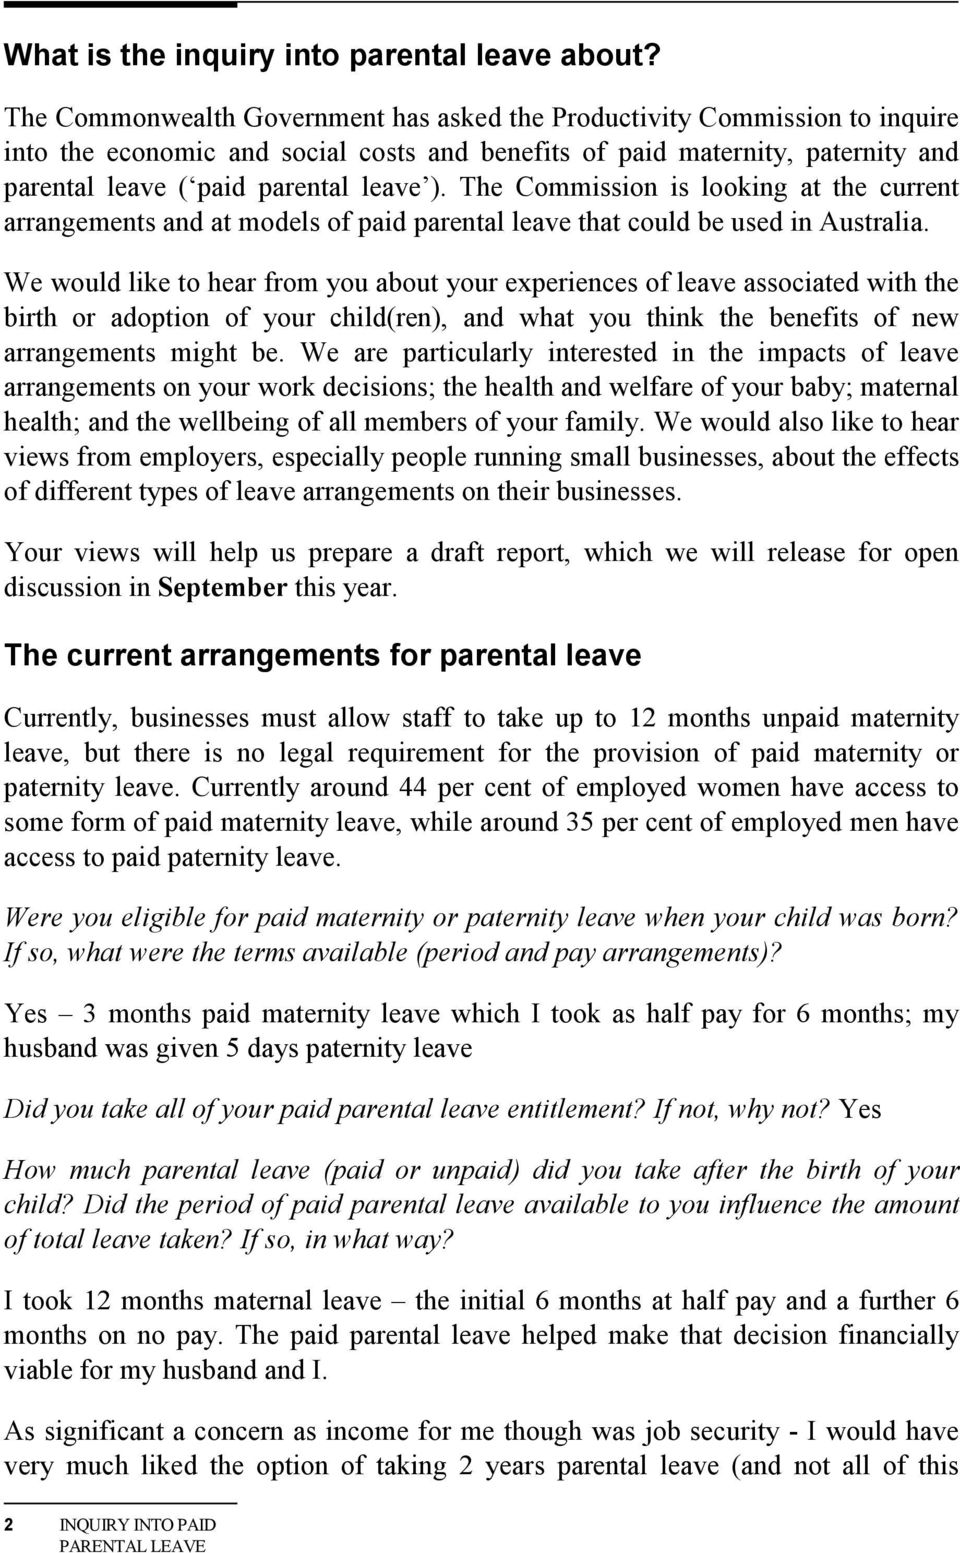 The Commission is looking at the current arrangements and at models of paid parental leave that could be used in Australia.